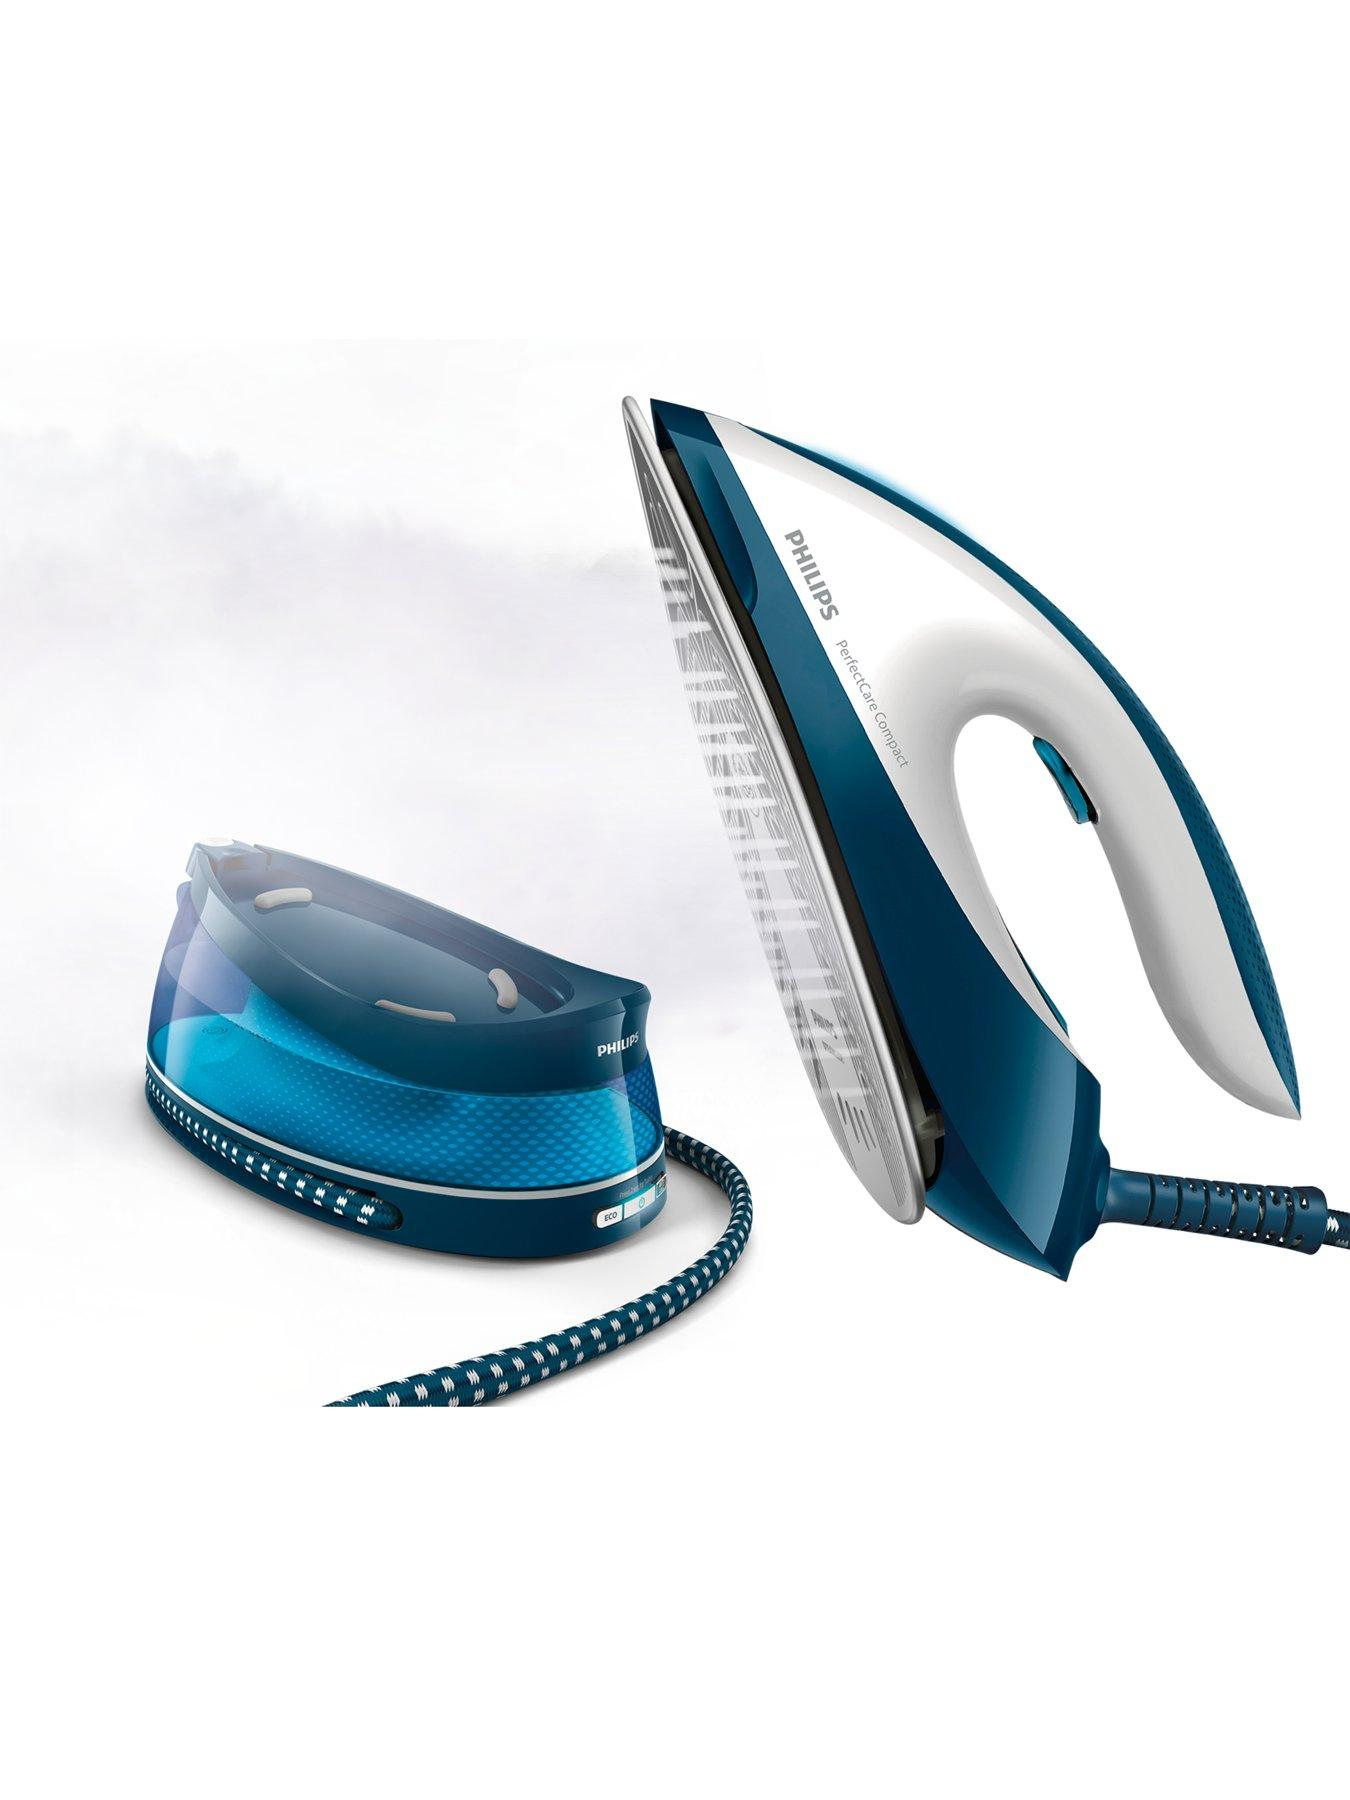 Philips GC7805 20 PerfectCare pact Steam Generator Iron with